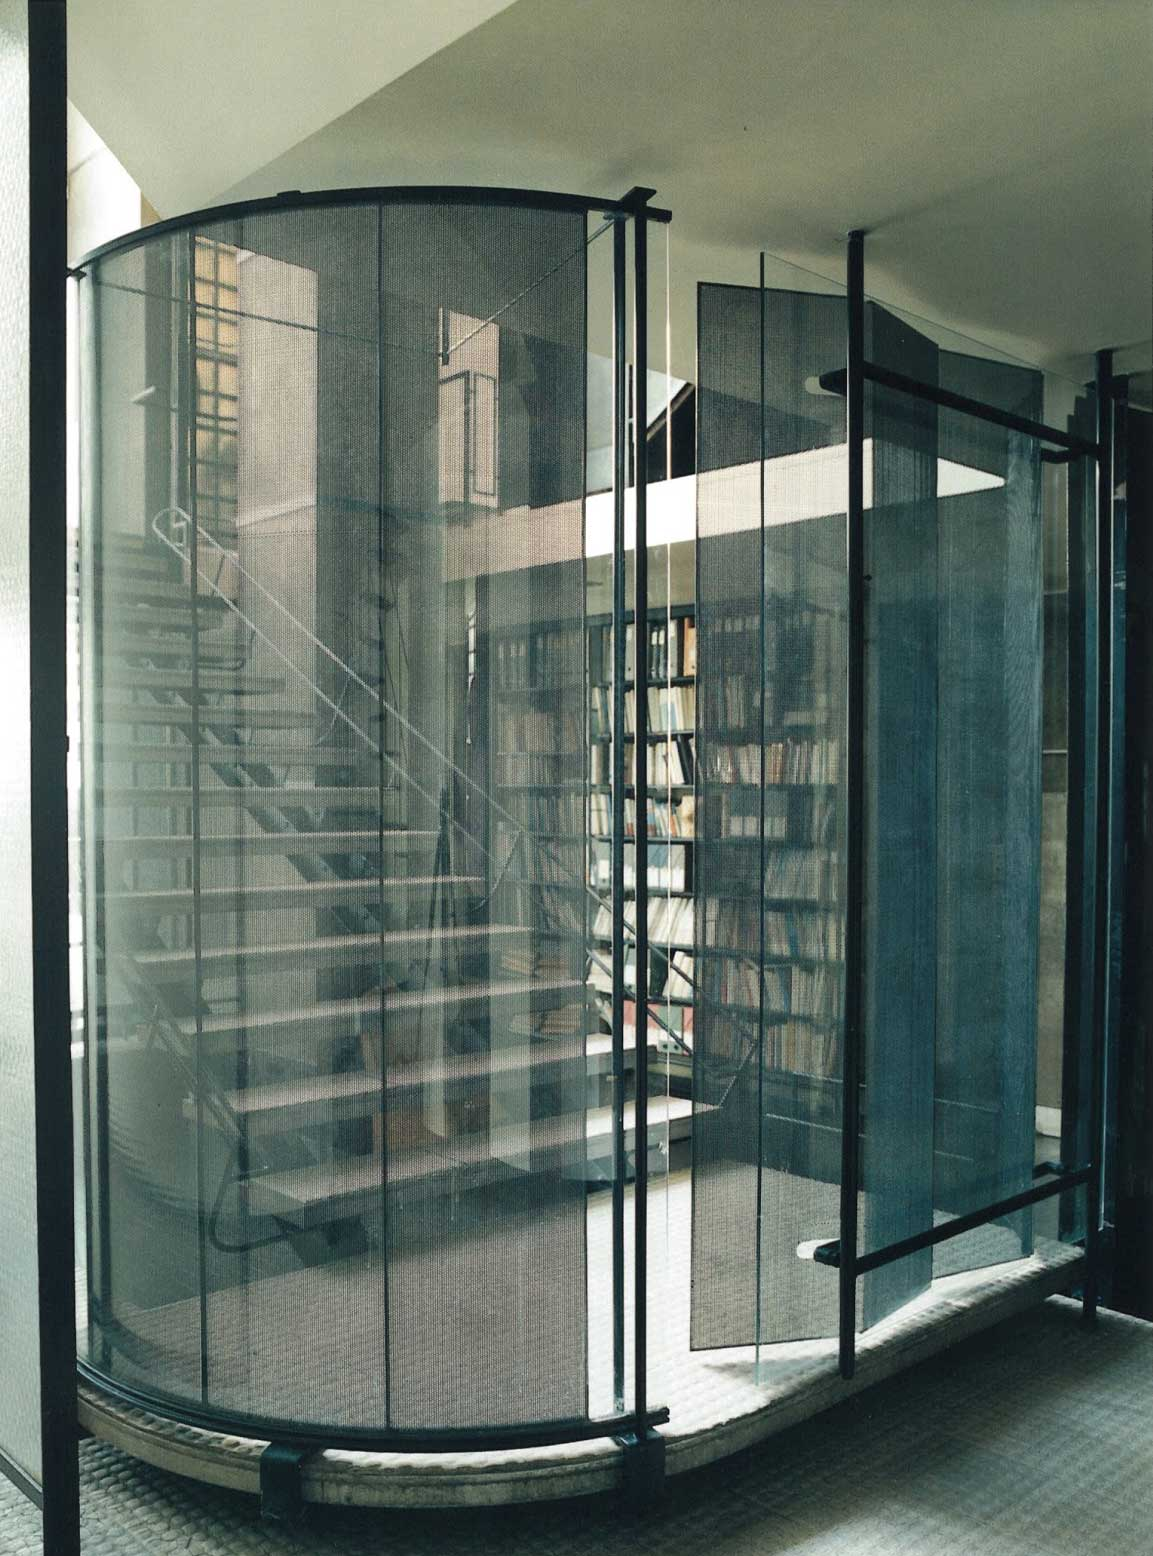 Maison de verre paris by pierre chareau bernard bijvoet for Bar interieur maison